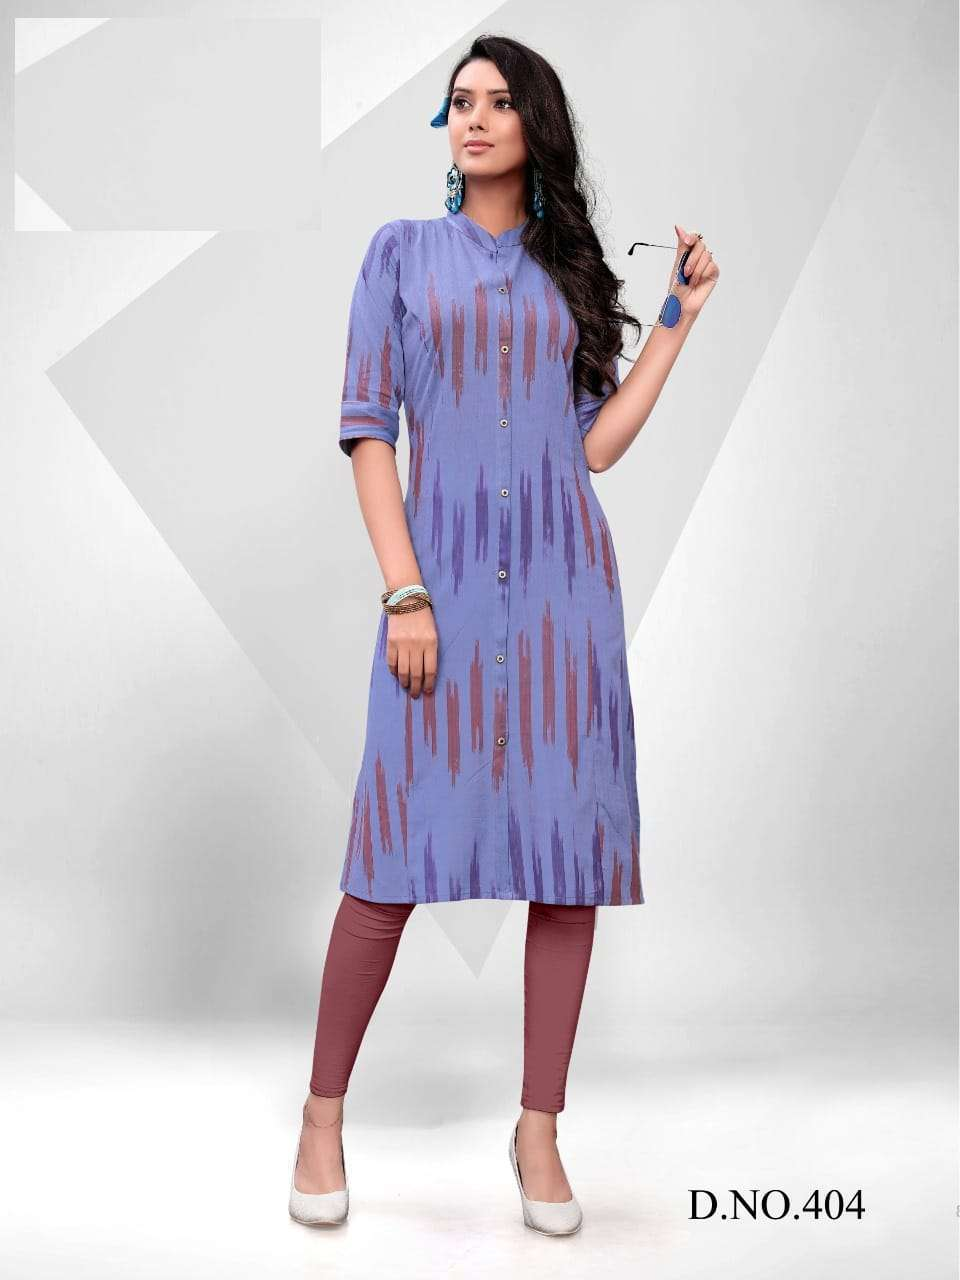 Blue Hills Ikkat World Vol 2 Kurti Wholesale Catalog 8 Pcs 6 1 - Blue Hills Ikkat World Vol 2 Kurti Wholesale Catalog 8 Pcs